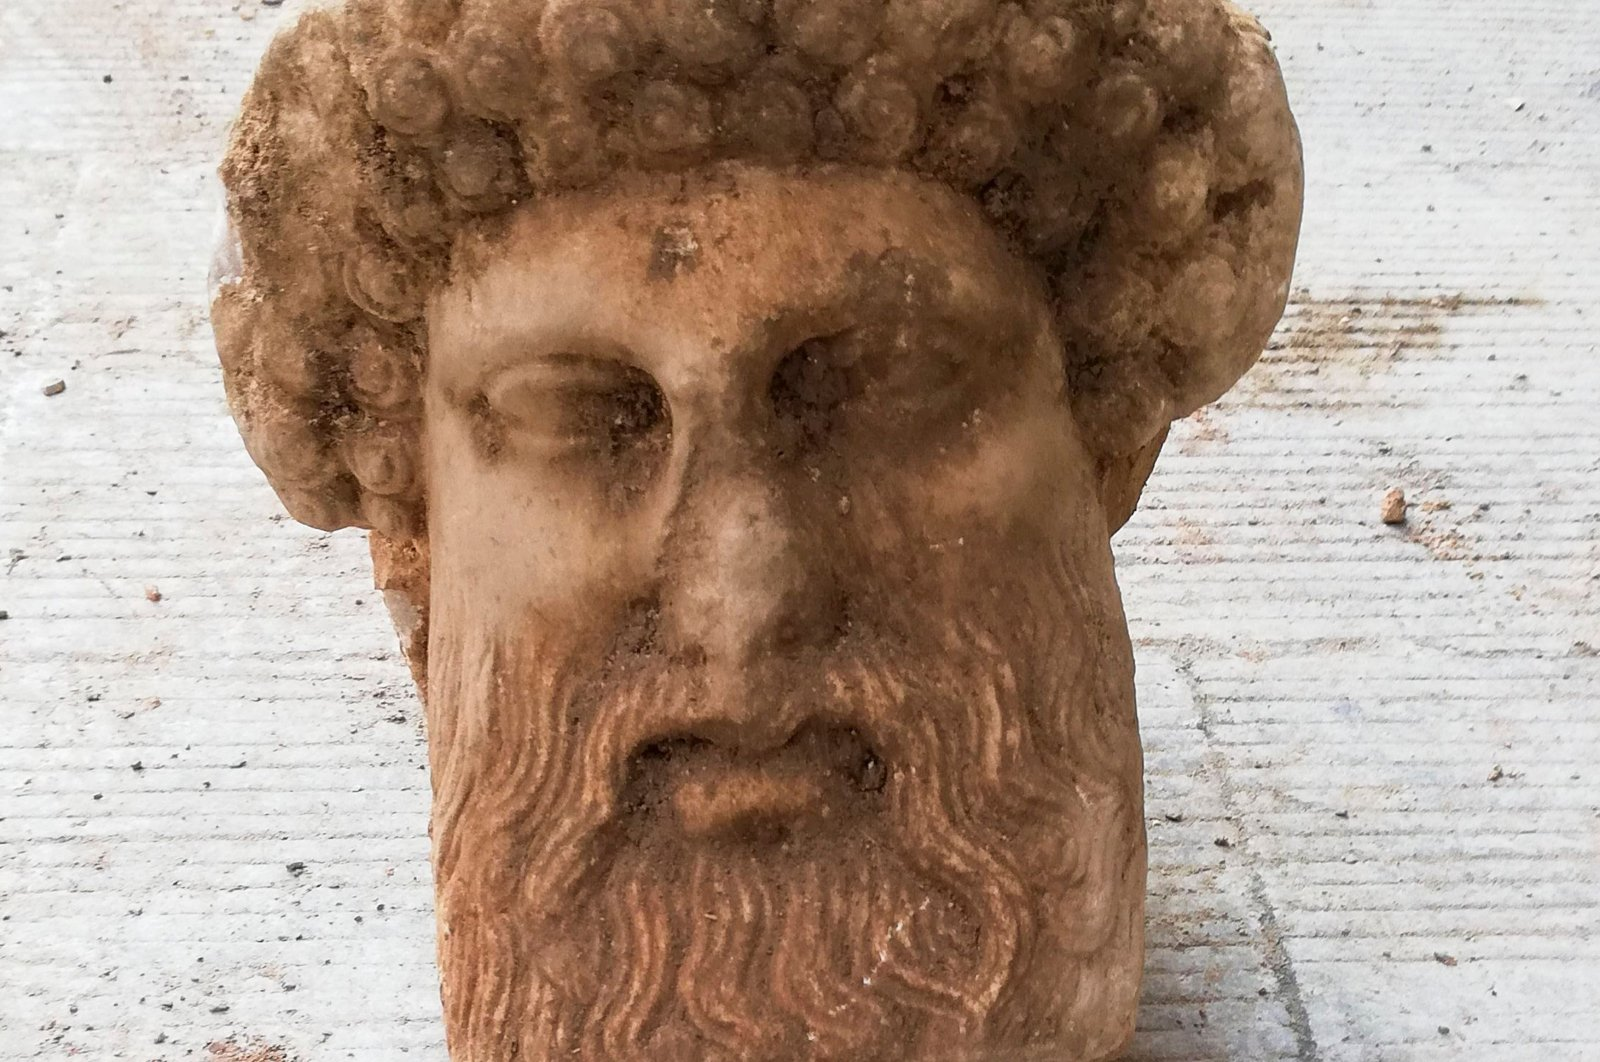 This handout picture released by the Greek Culture Ministry shows the head of an ancient statue of the Greek god Hermes which has been unearthed during excavations for sewage system improvements in central Athens, the ministry of culture said on Nov. 15, 2020. (Greek culture ministry Photo via AFP)